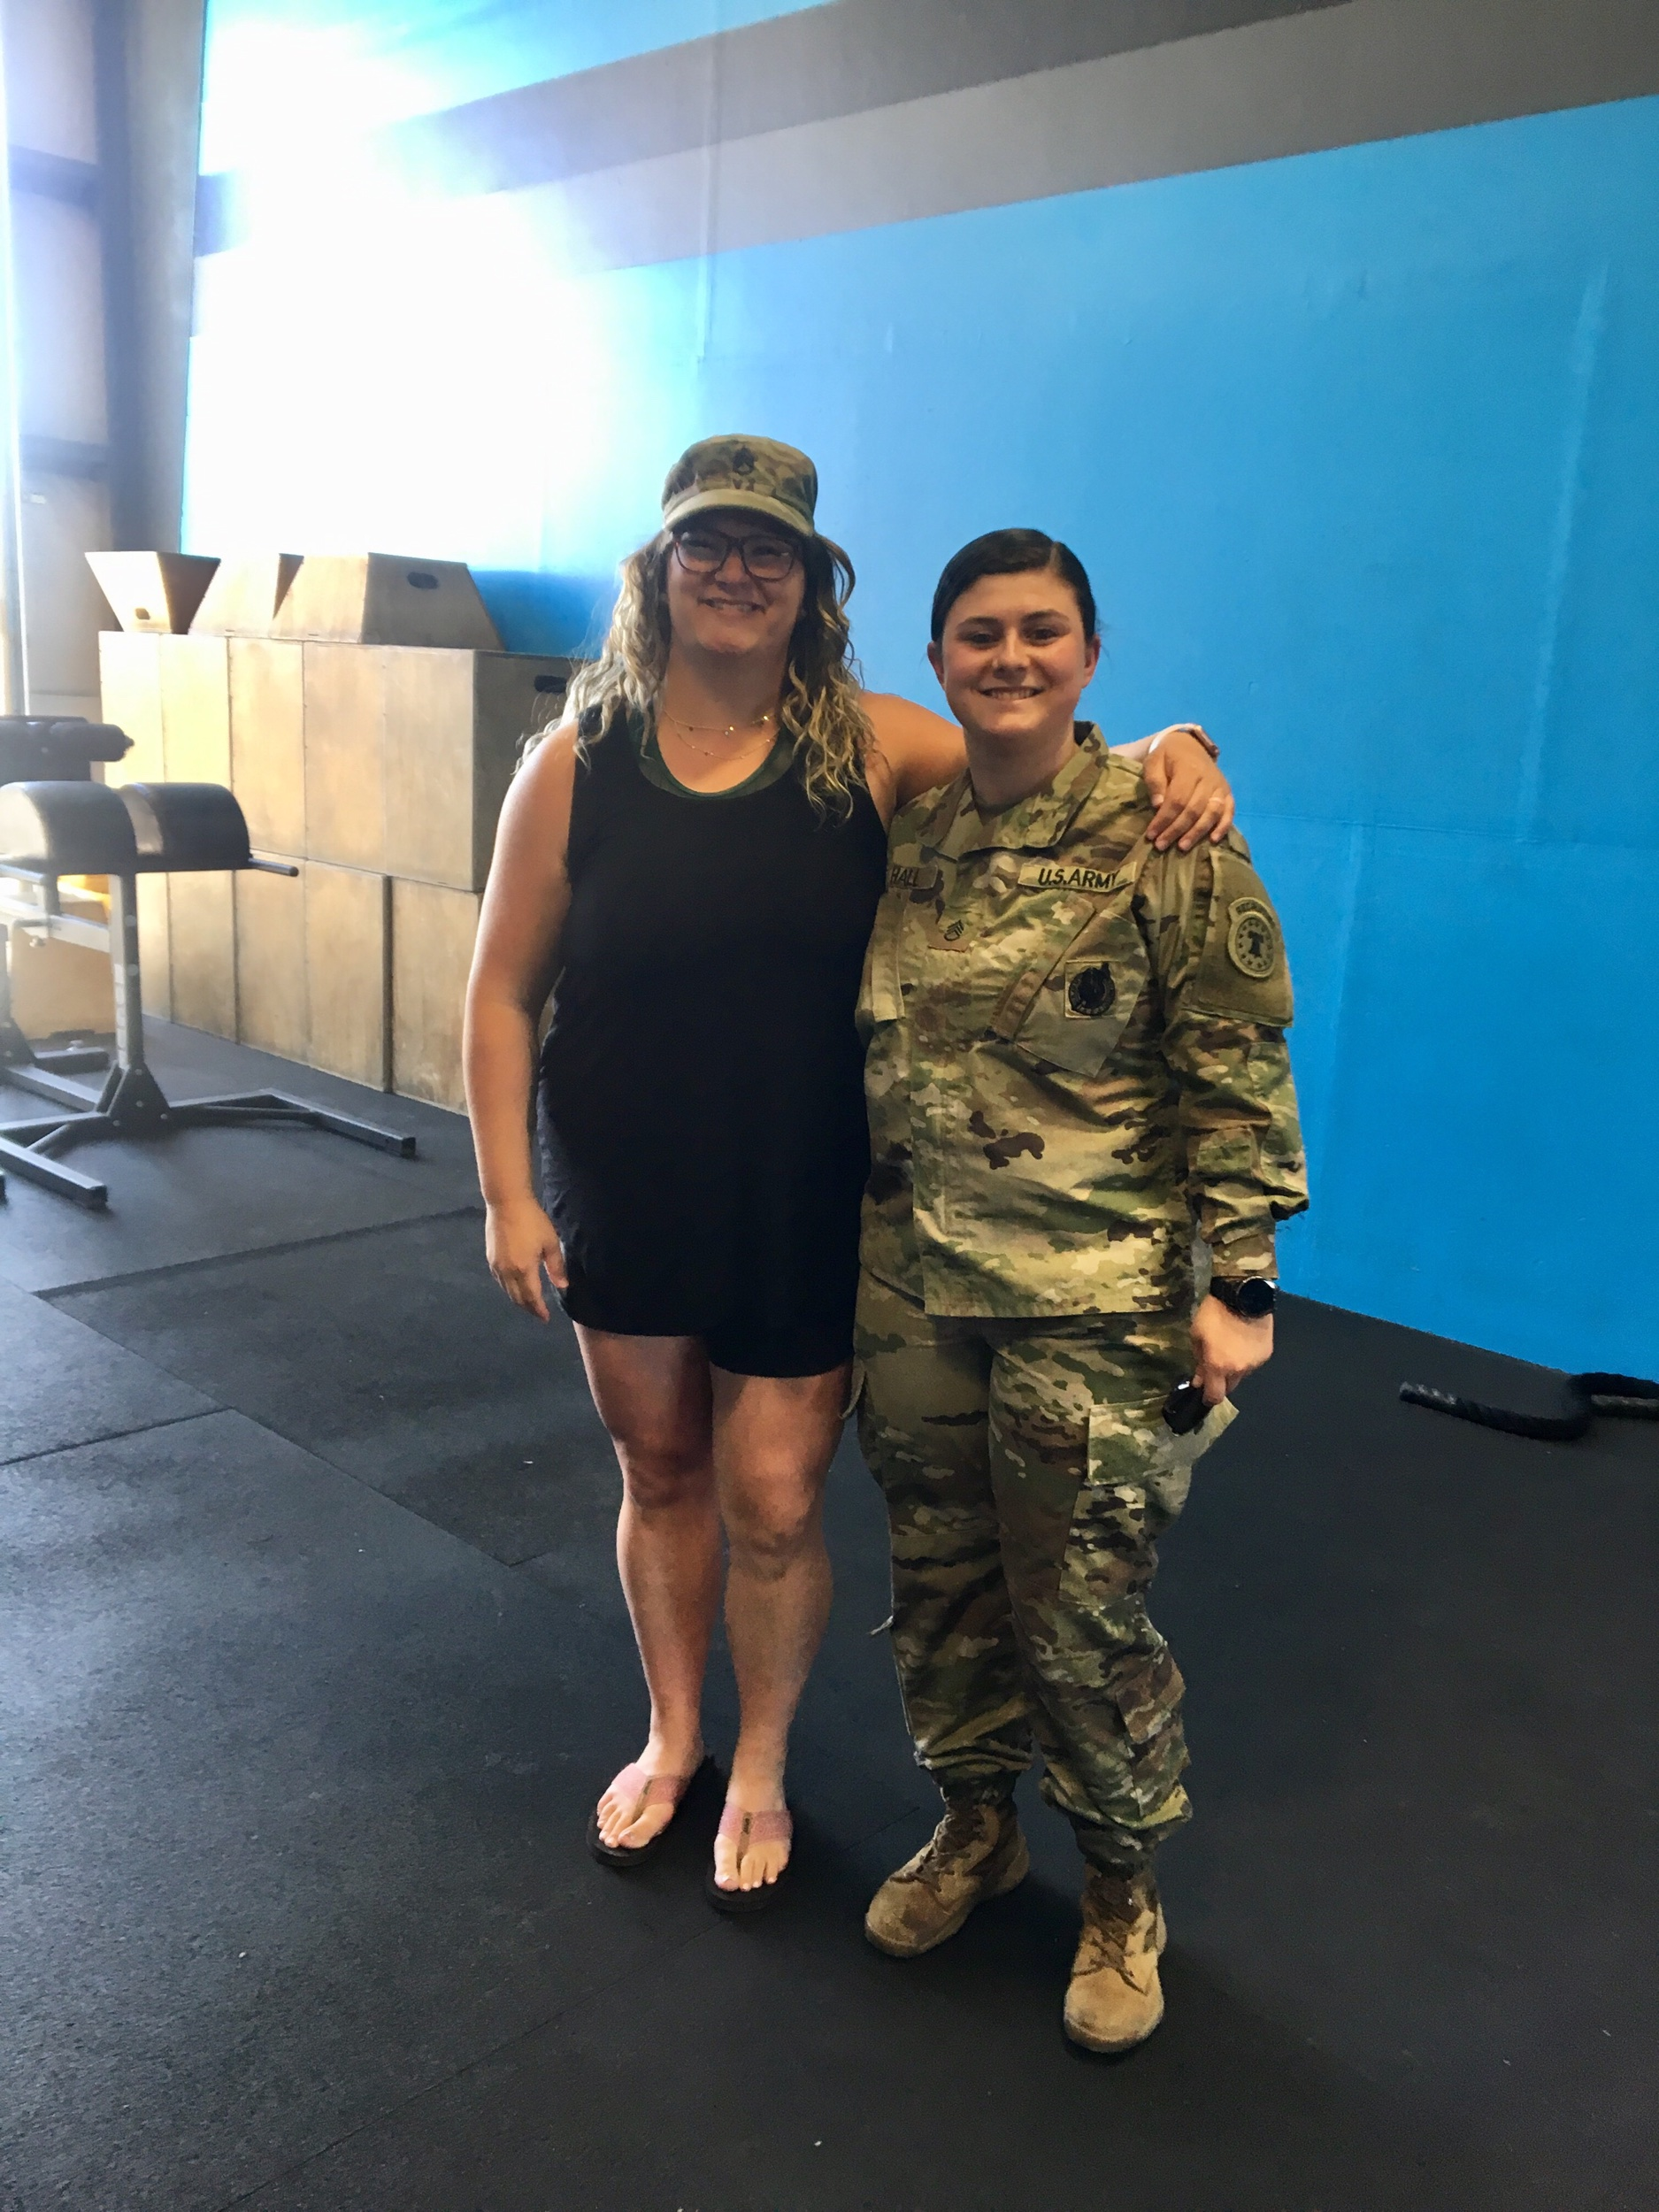 SSG Savannah Hall with me at her re-enlistment ceremony we held yesterday at the gym!!!! ❤️